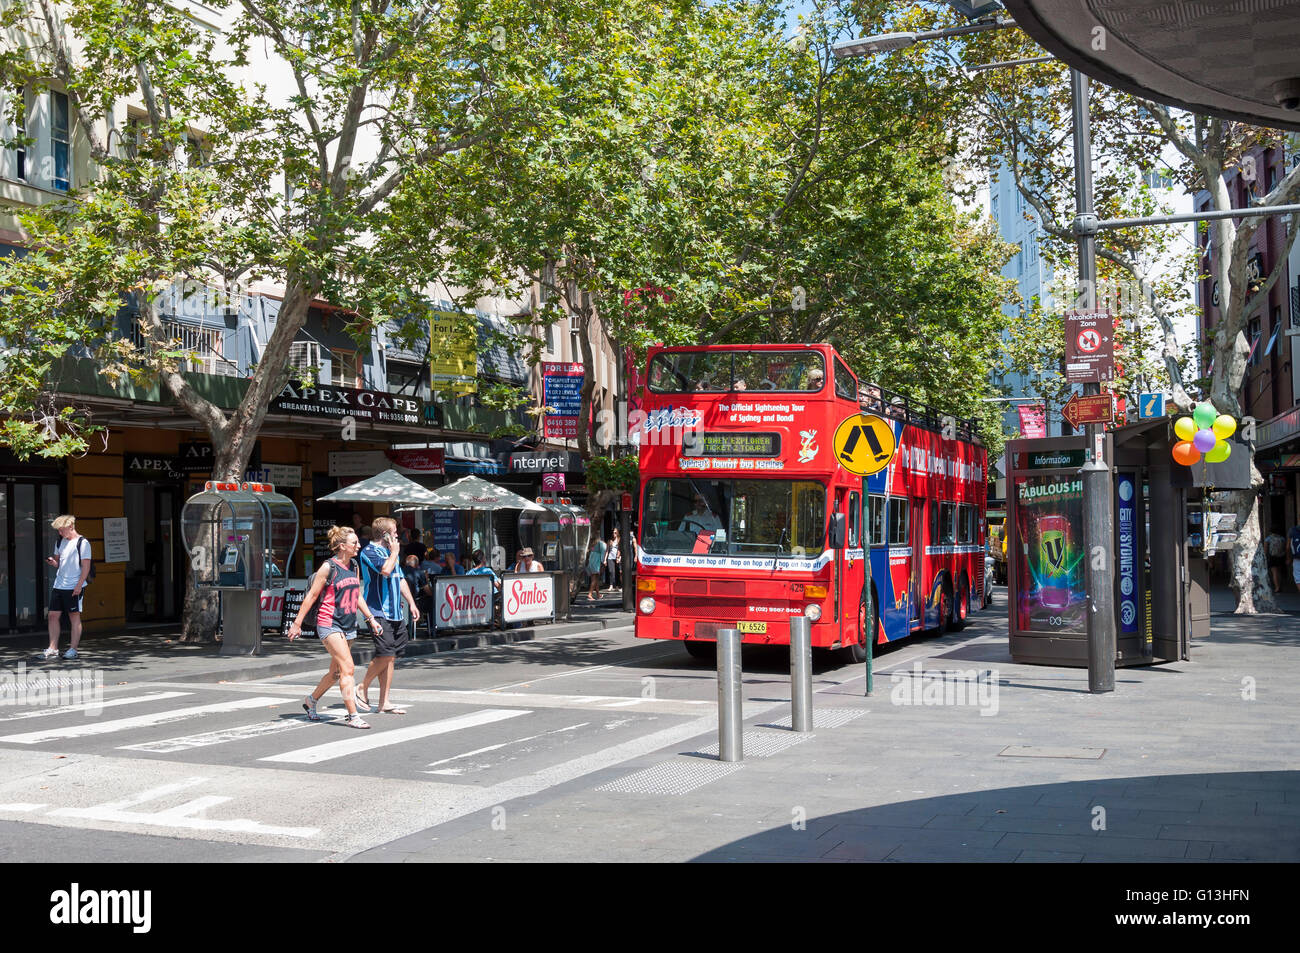 Kings Cross Sydney - Plan a Holiday - Things to Do, Hotels ... |Kings Cross Sydney Australia